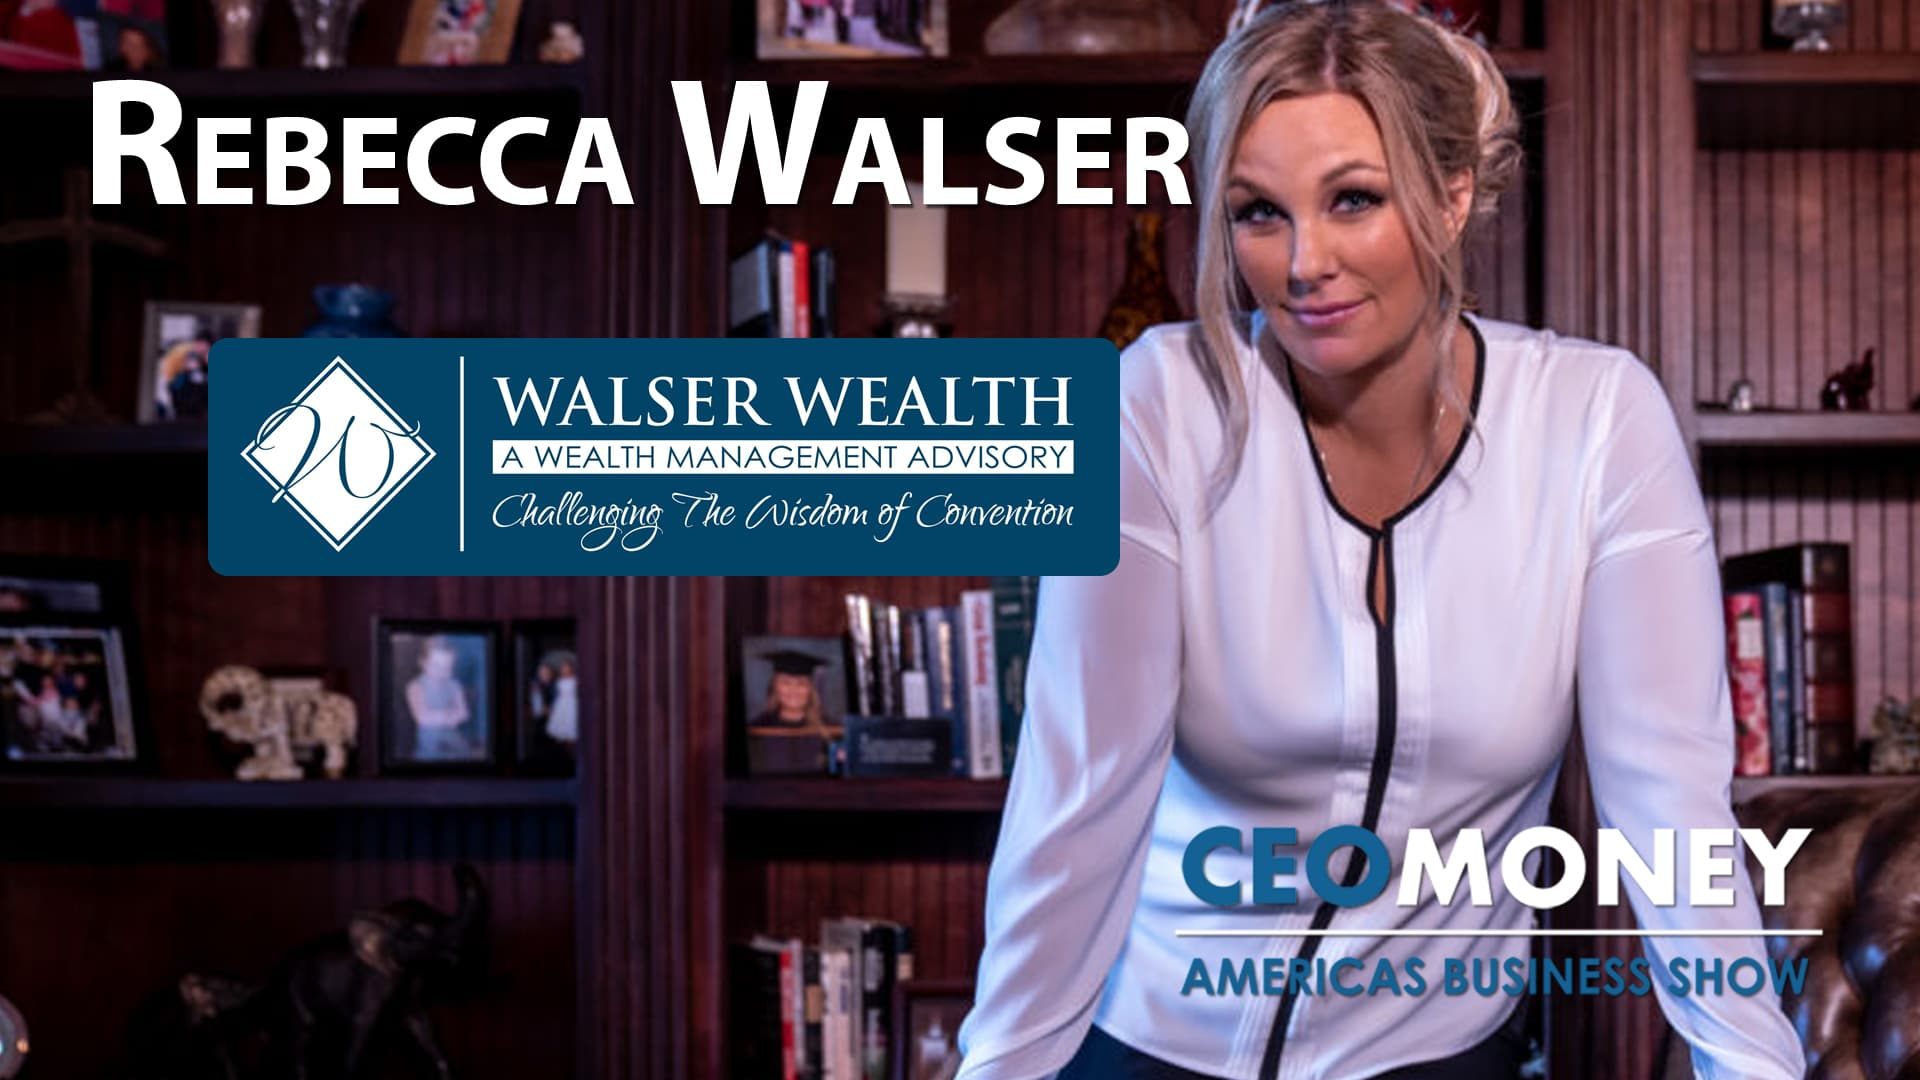 Top 100 US Advisor Rebecca Walser on what is wrong with your 401k